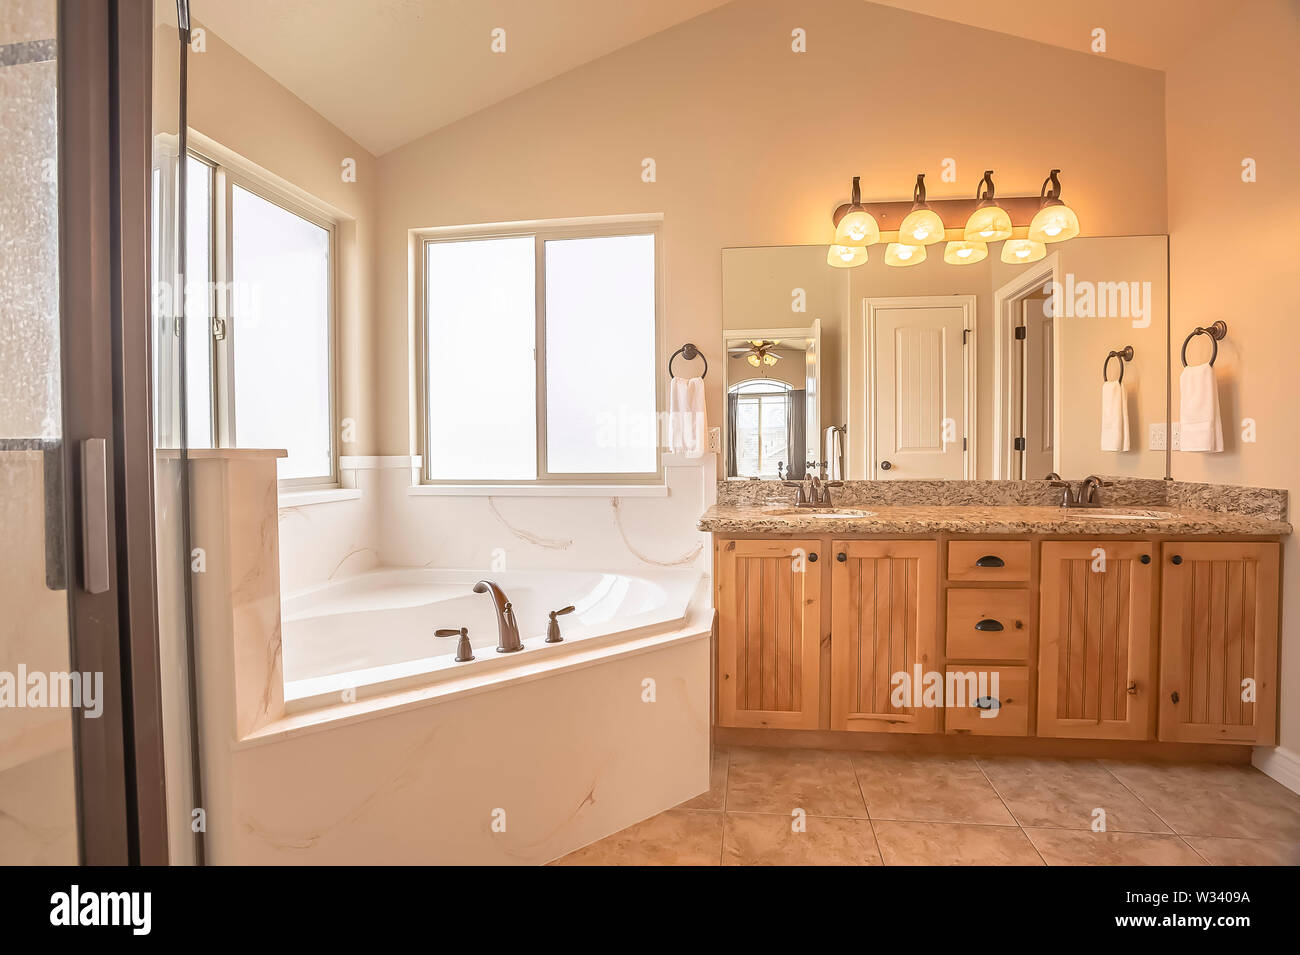 Built In Bathtub At The Corner Of A Home Bathroom With Tile Floor And Beige Wall Sliding Windows And A Vanity With Double Sink Can Also Be Seen Insid Stock Photo